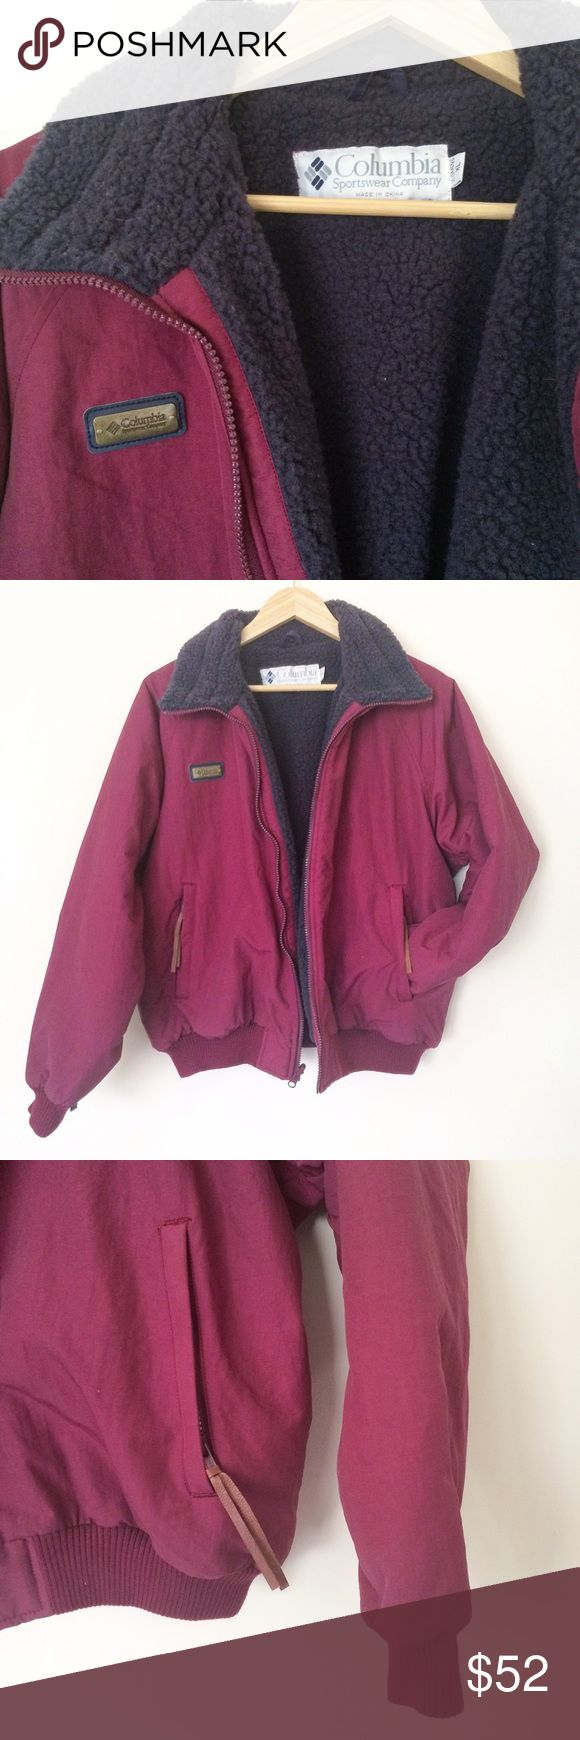 """Vintage Columbia puffy winter jacket Vintage Columbia jacket. Very good condition. Super warm.  Label size XL but like modern M. Flat measurements: underarms:24"""", length:25"""". Columbia Jackets & Coats Jean Jackets"""